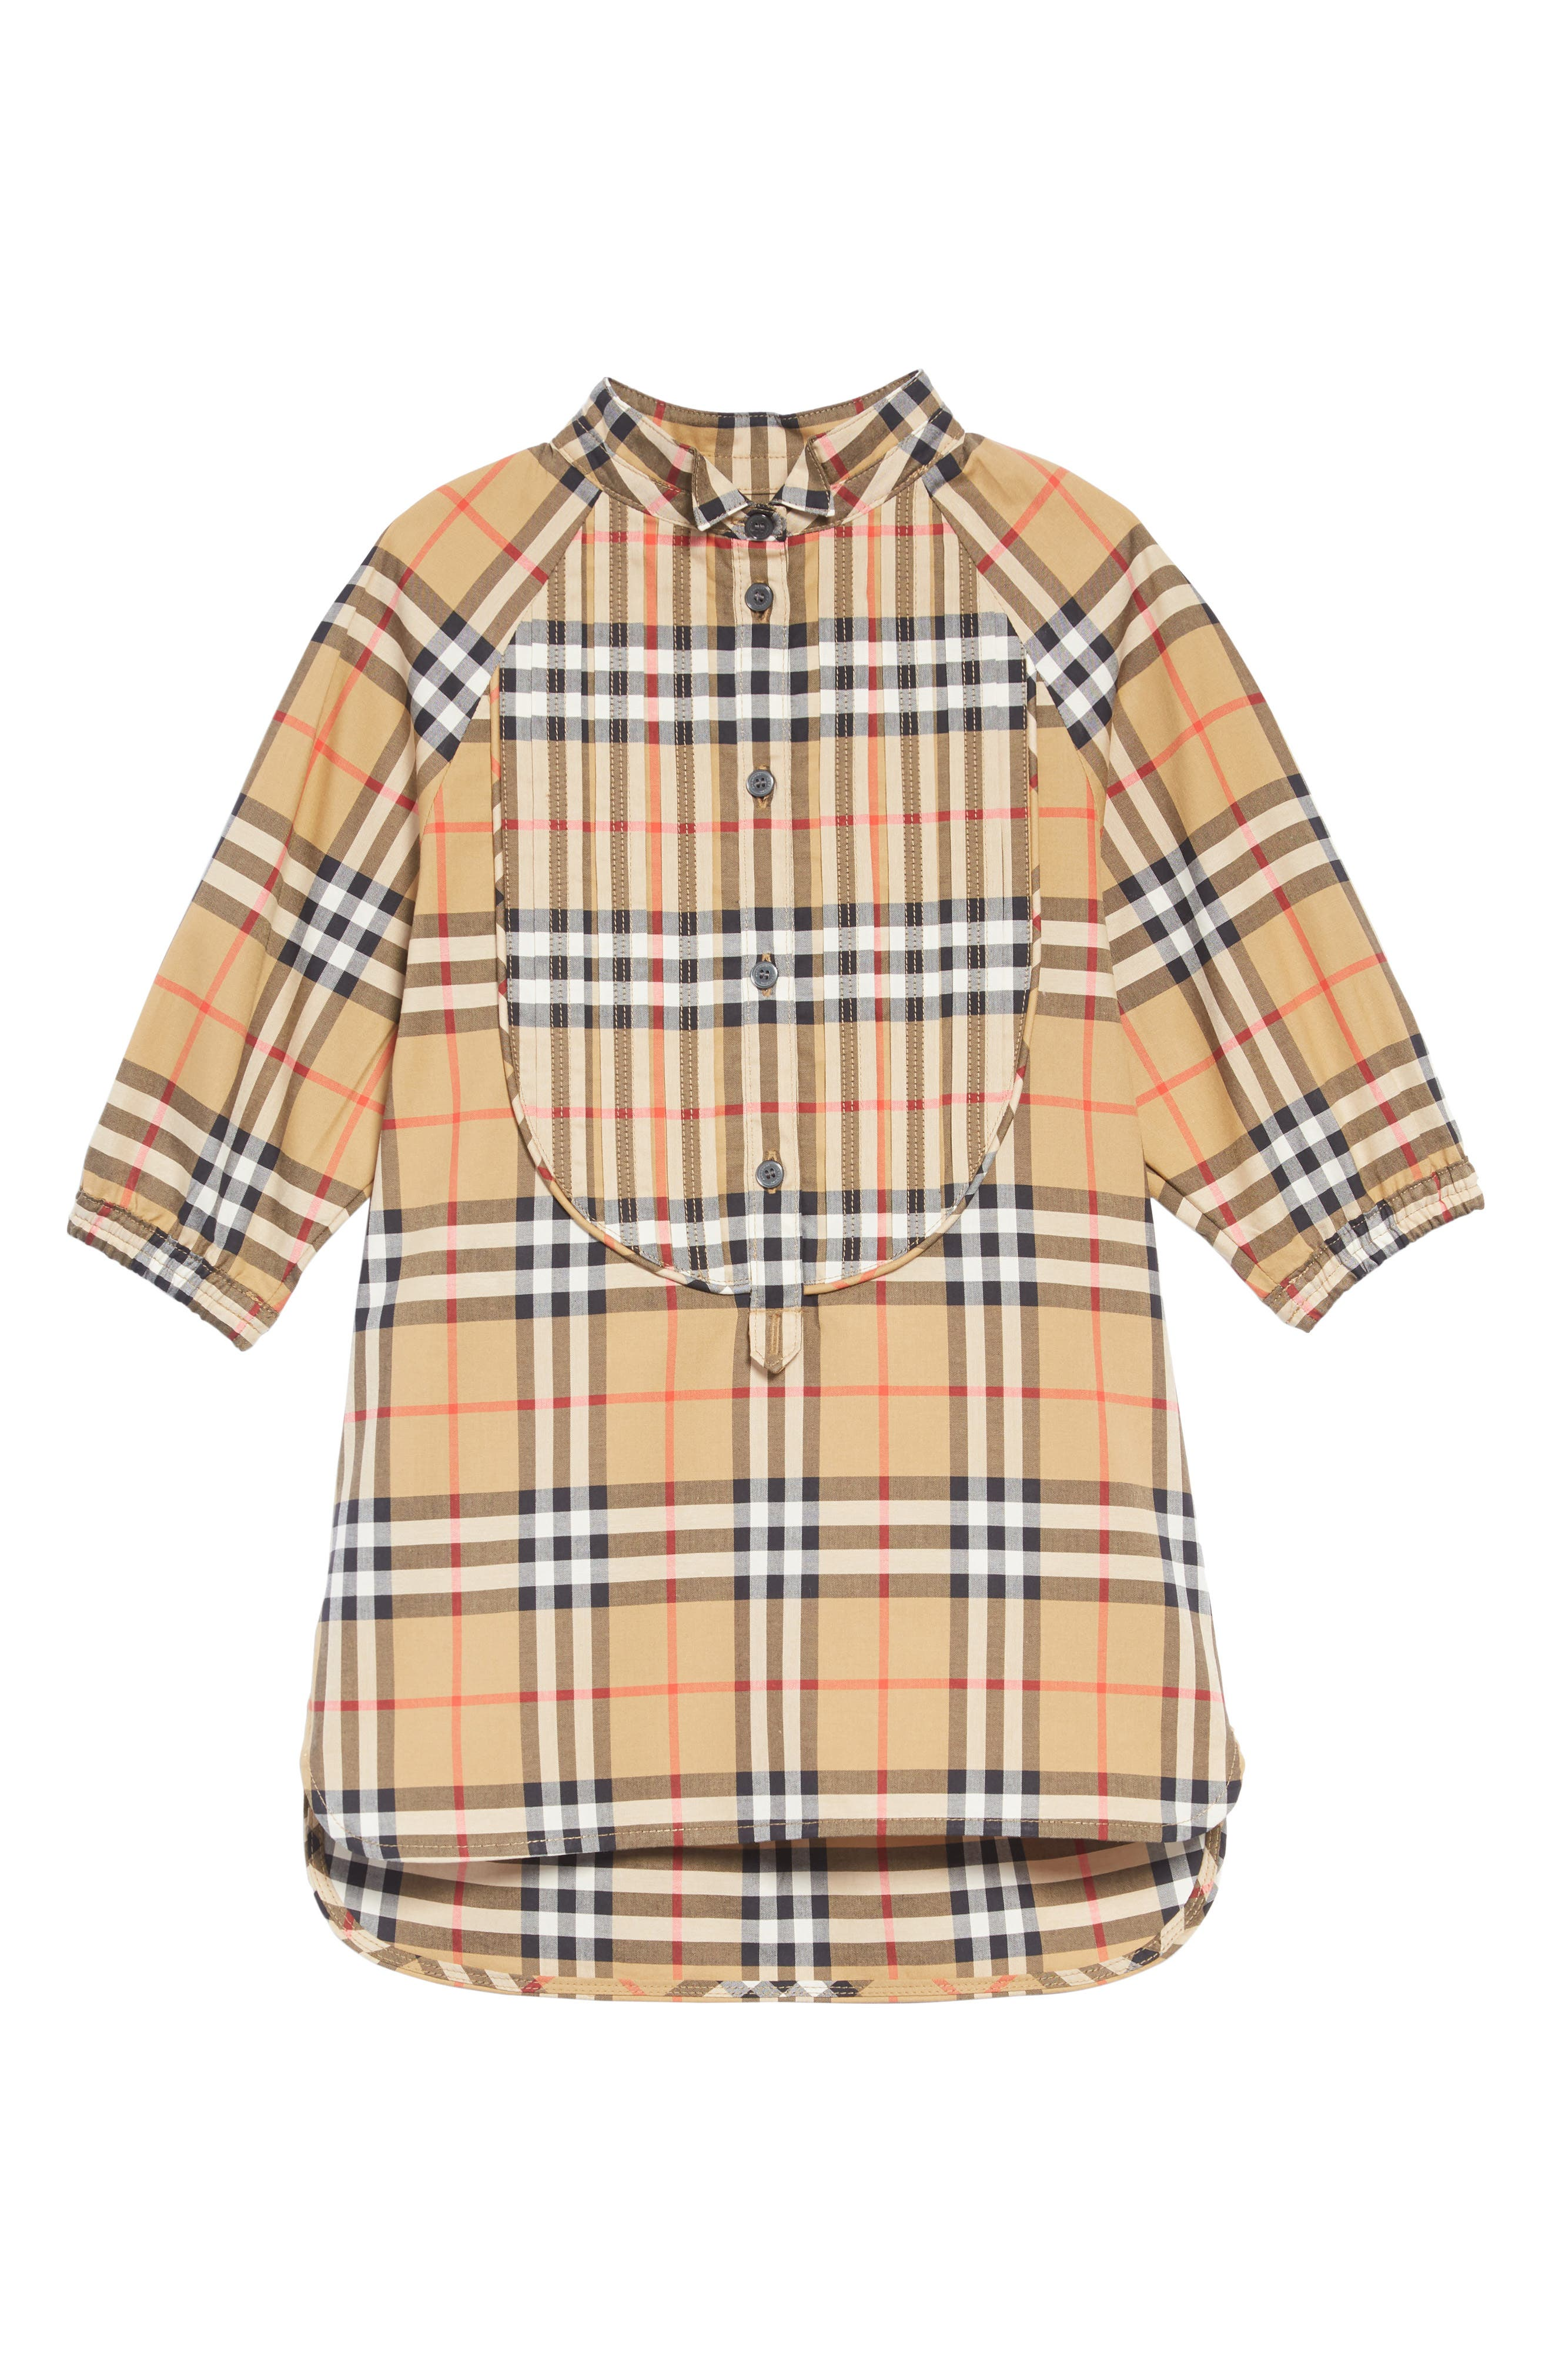 BURBERRY Elodie Vintage Check Shirtdress, Main, color, ANTIQUE YELLOW